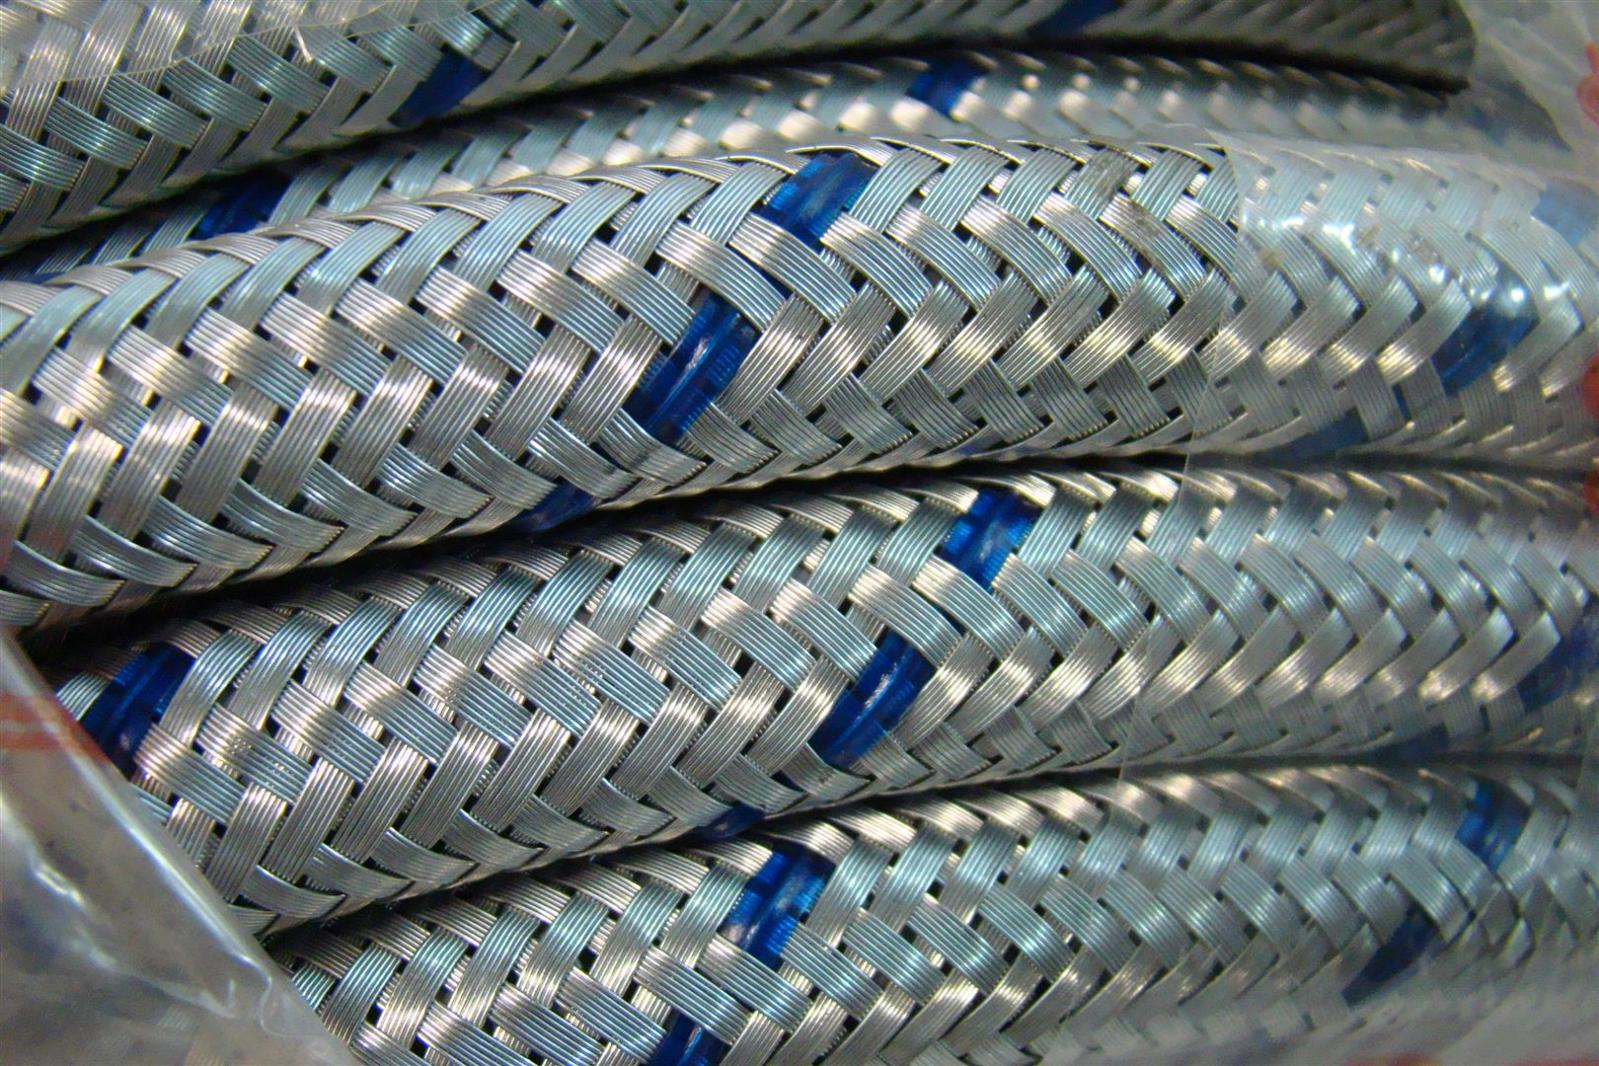 Braded Flexible Galvanized Steel Cable Conduit Pvc Coating 12mm Id Wiring 175mm Od